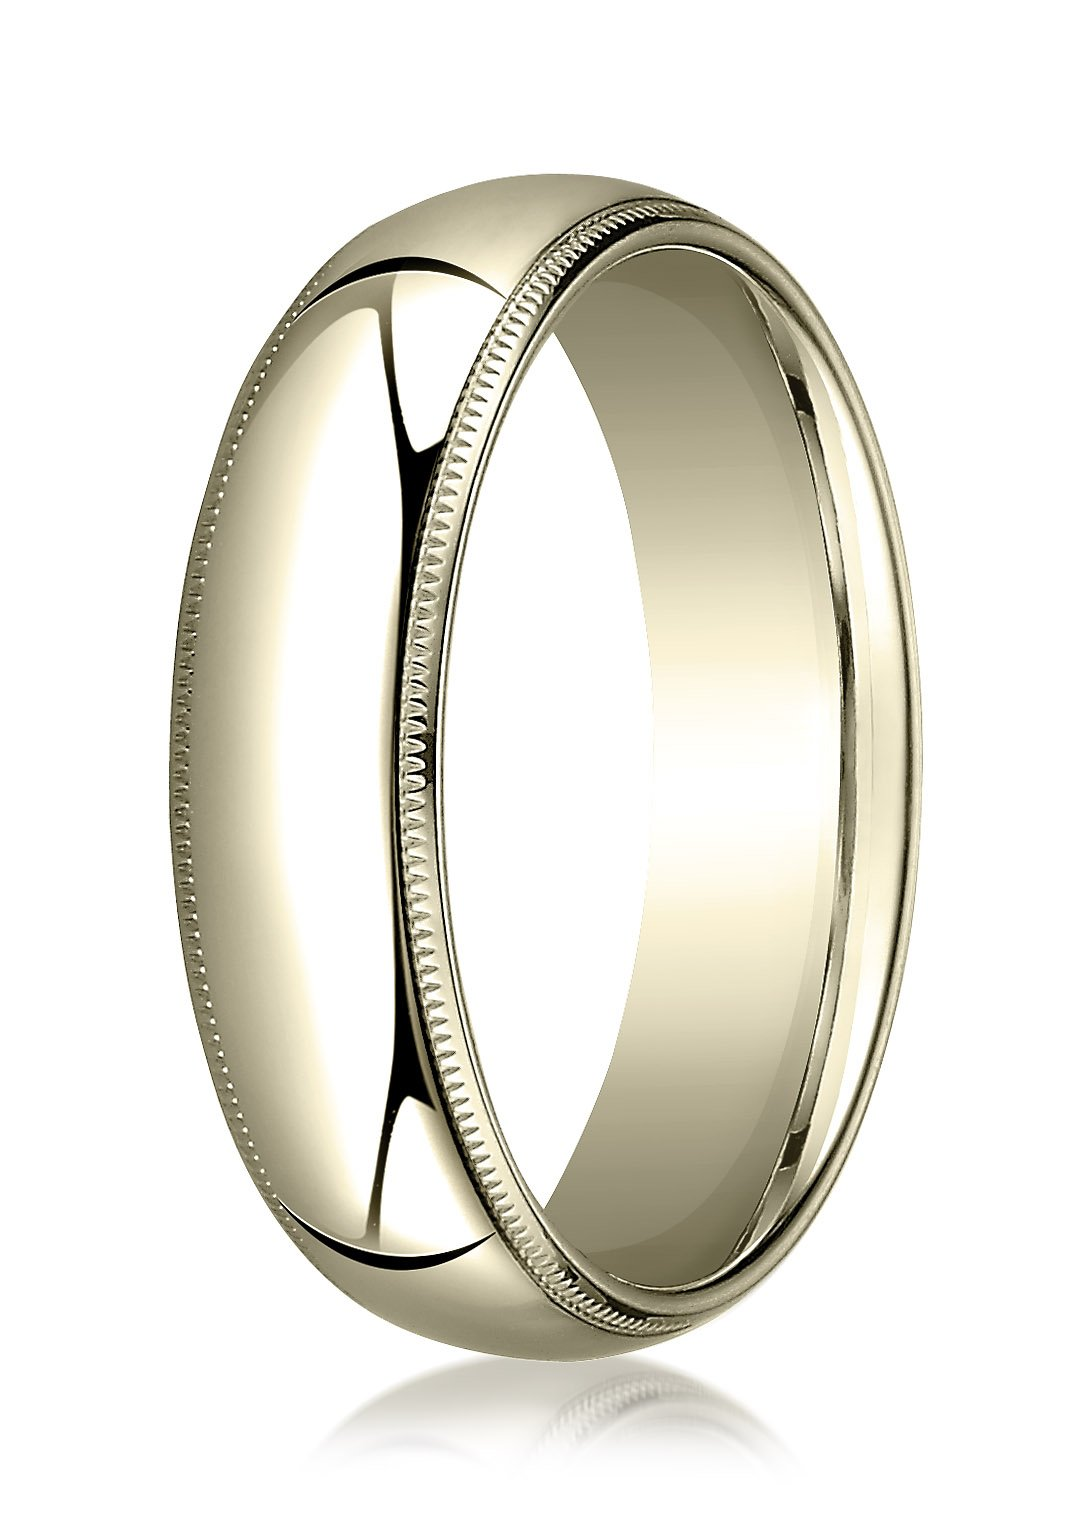 Mens 18K Yellow Gold, 6mm Slightly Domed Comfort-Fit Ring with Milgrain (sz 11)